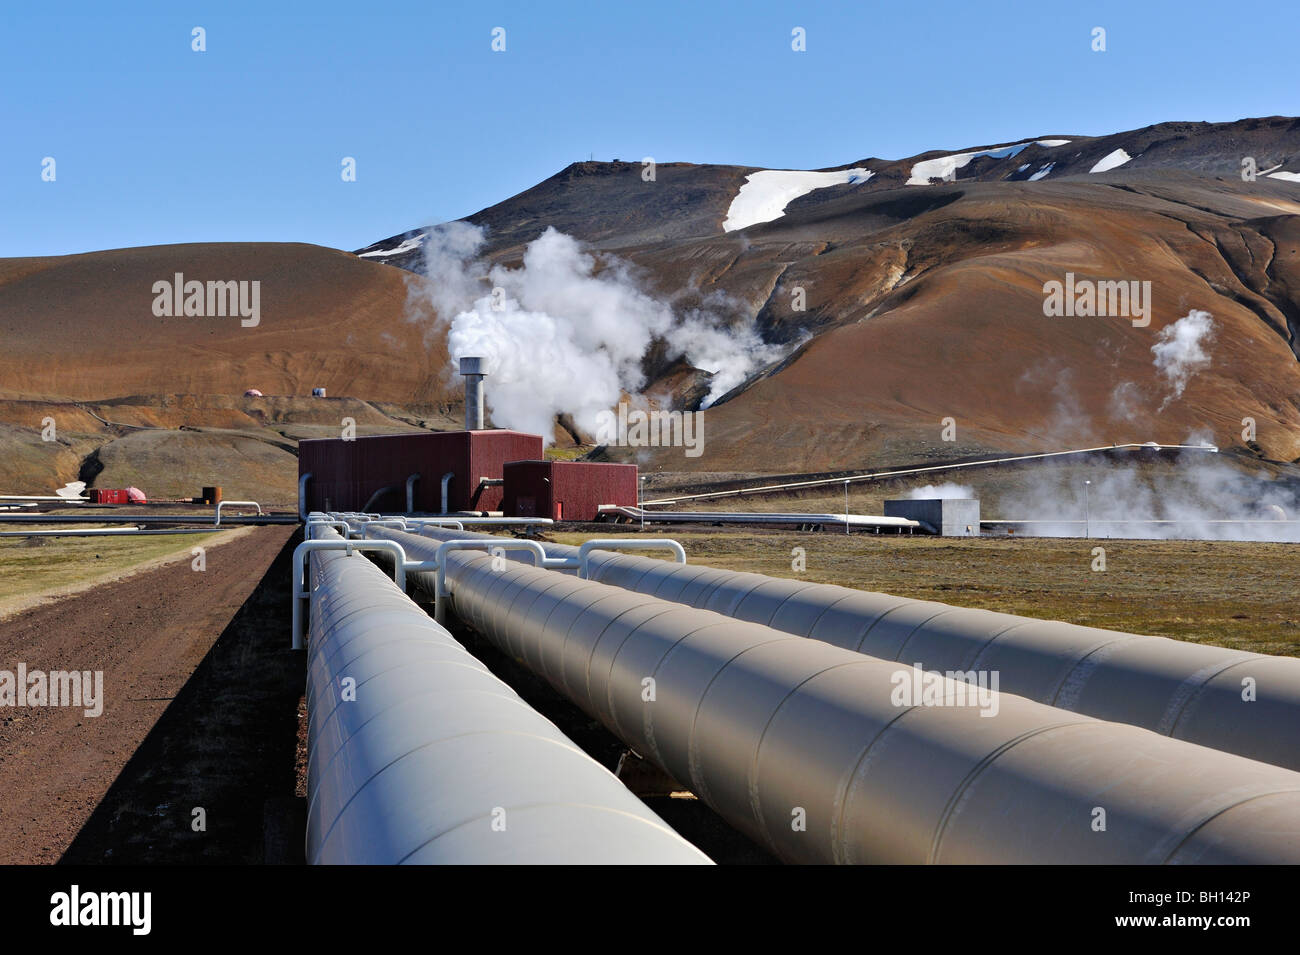 Pipework leads to exhaust steam gushing from equipment at the Krafla geothermal power plant near Myvatn, northern - Stock Image